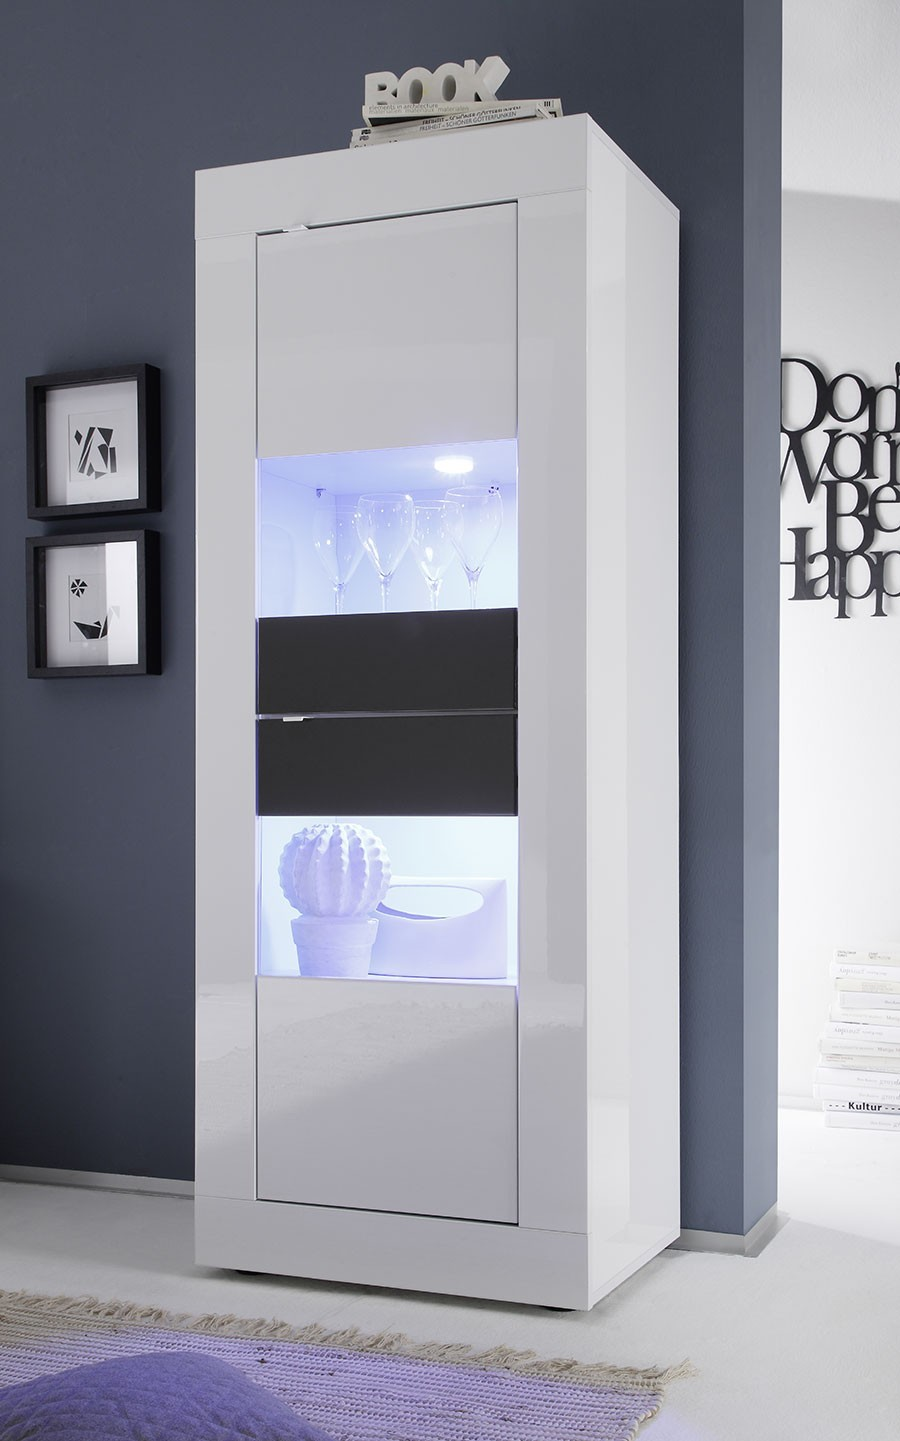 Vitrine Design Laqu Blanc Et Anthracite Avec Led # Armoire Bar Blanc Laque Led